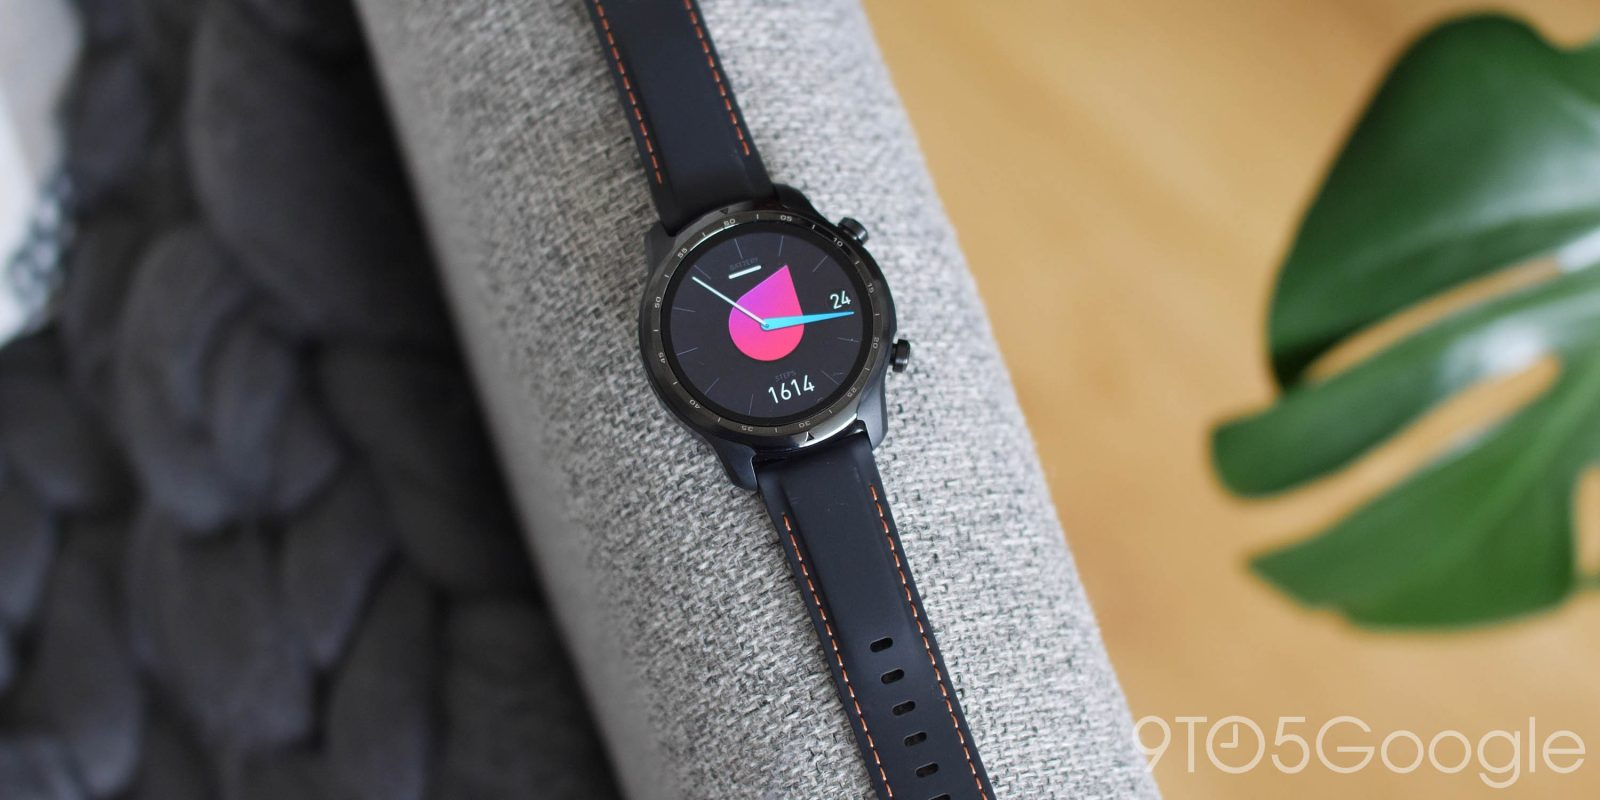 TicWatch Pro 3 hands-on: Notable upgrades [Video] - 9to5Google